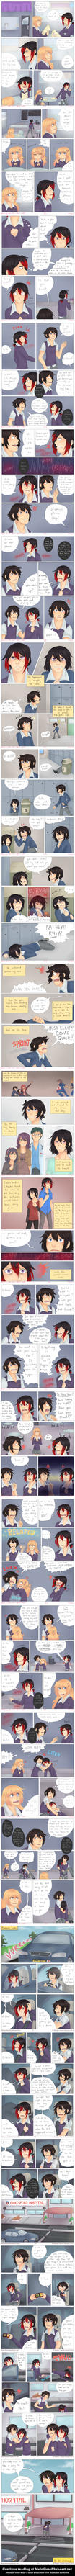 Melodies of the Heart: C3 [Pgs: 49 - 72] by Little-Miss-Boxie